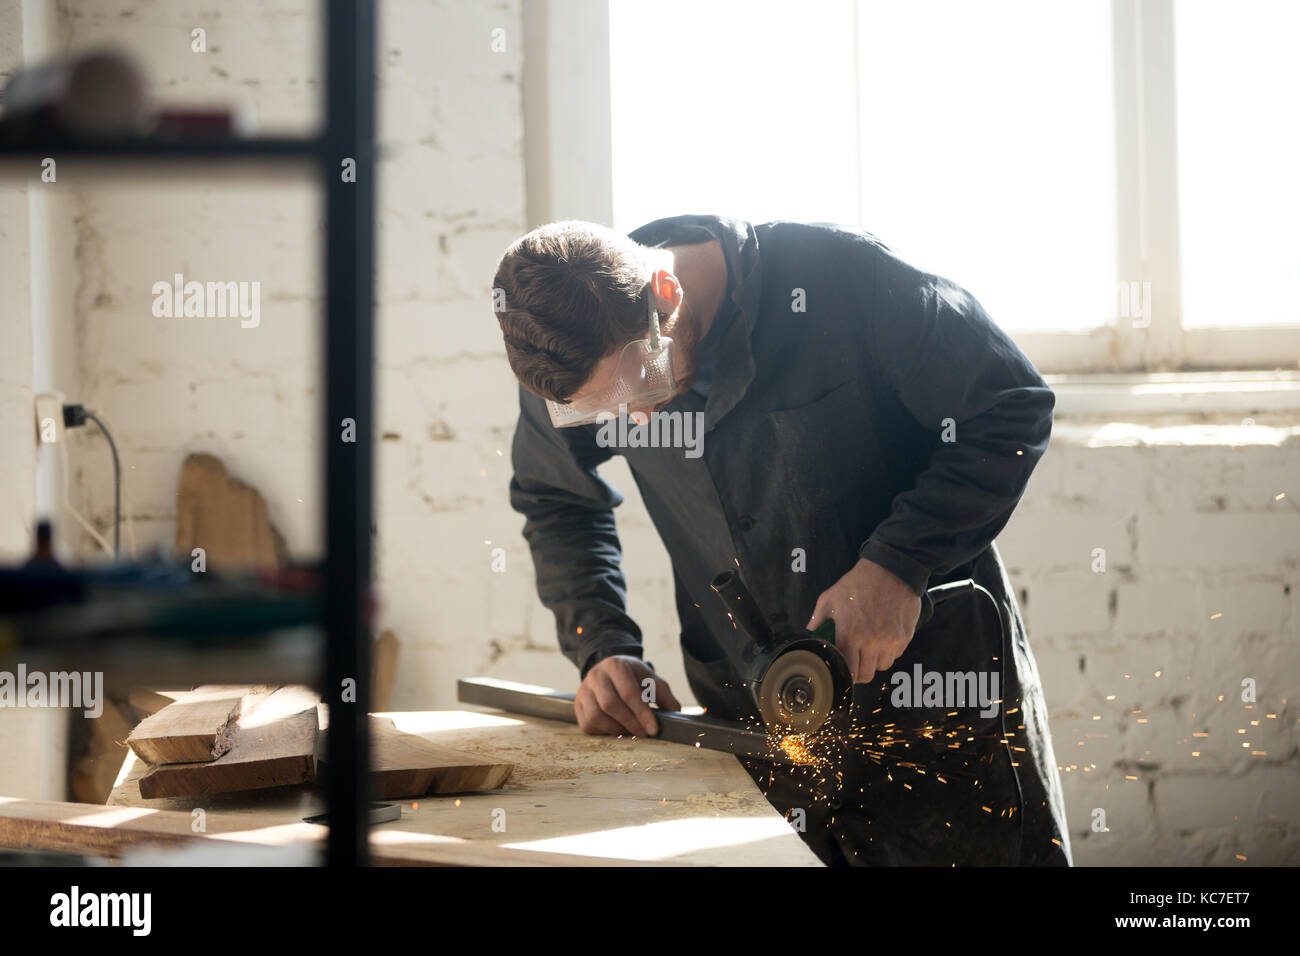 Craftsman makes own successful small business - Stock Image